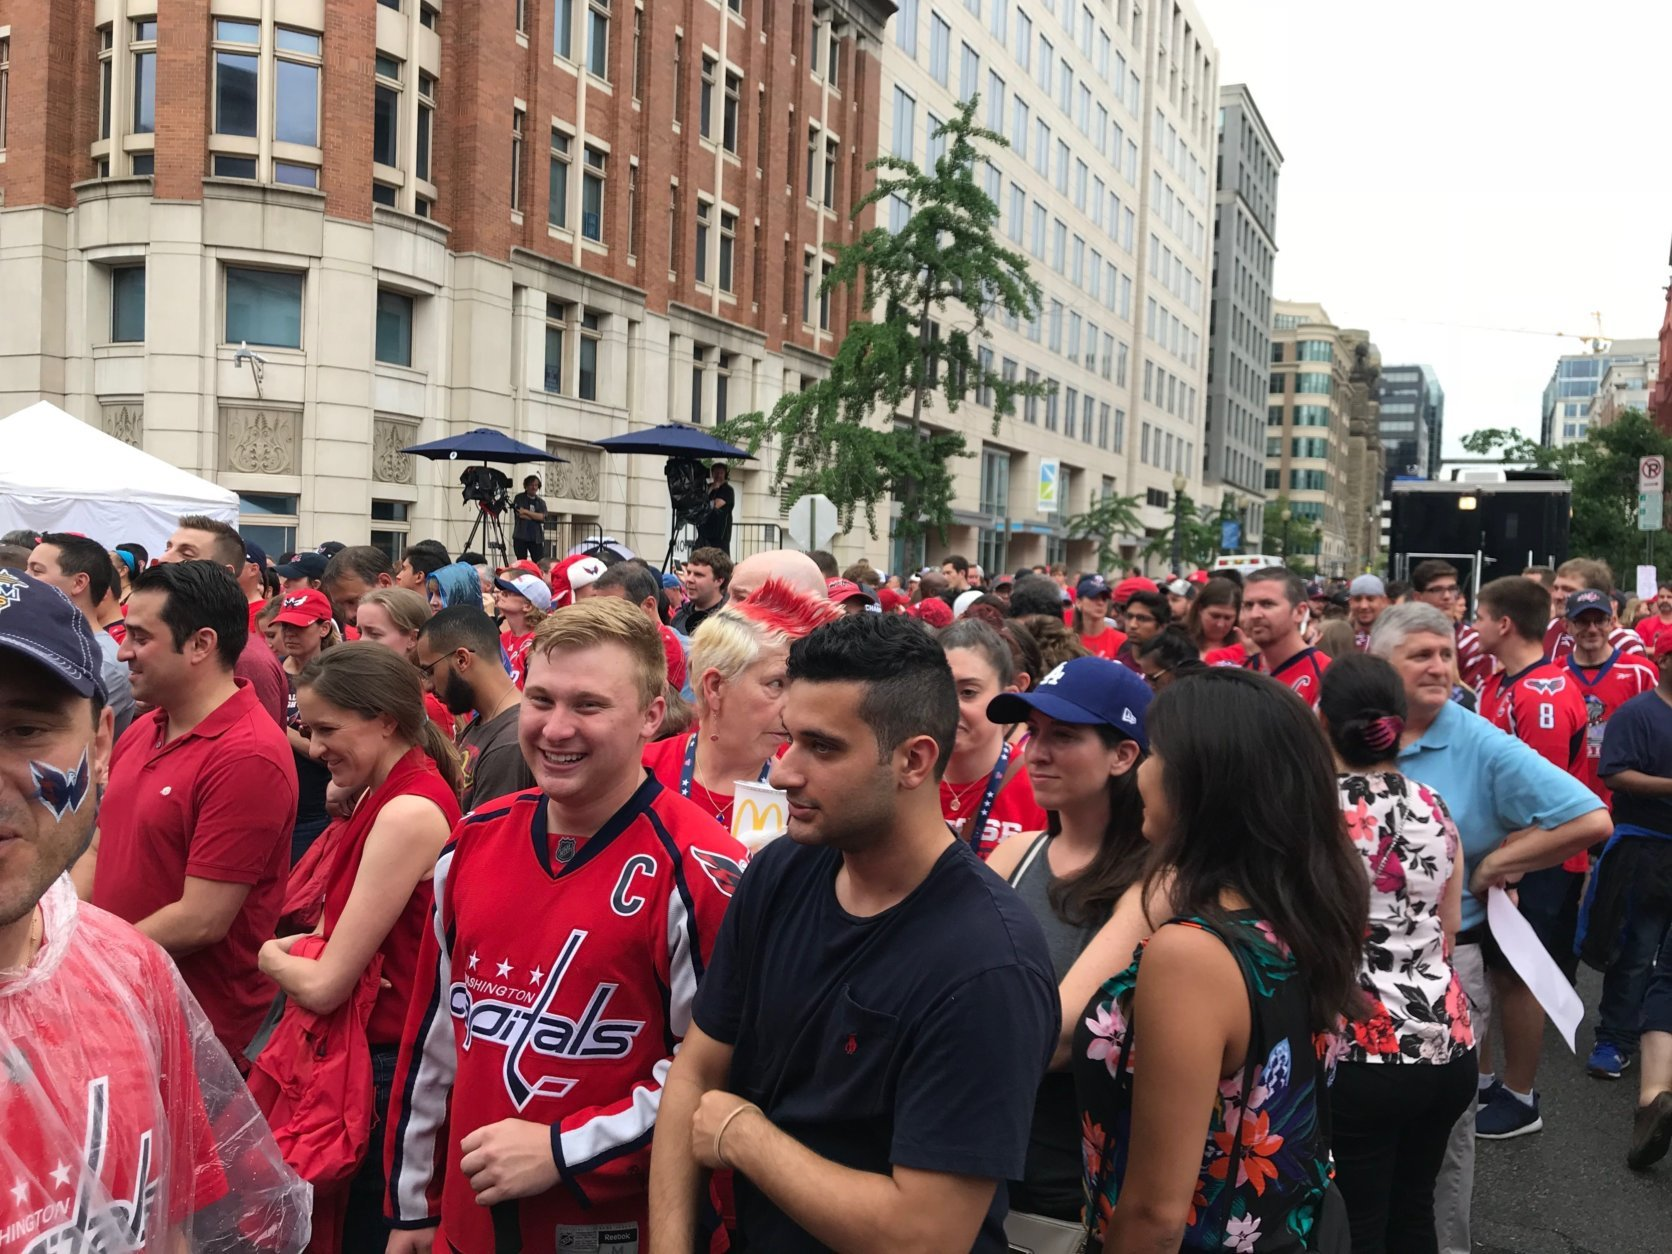 Washington Capitals fans gather in front of the National portrait Gallery for the pregame concert. (WTOP/Dick Uliano)